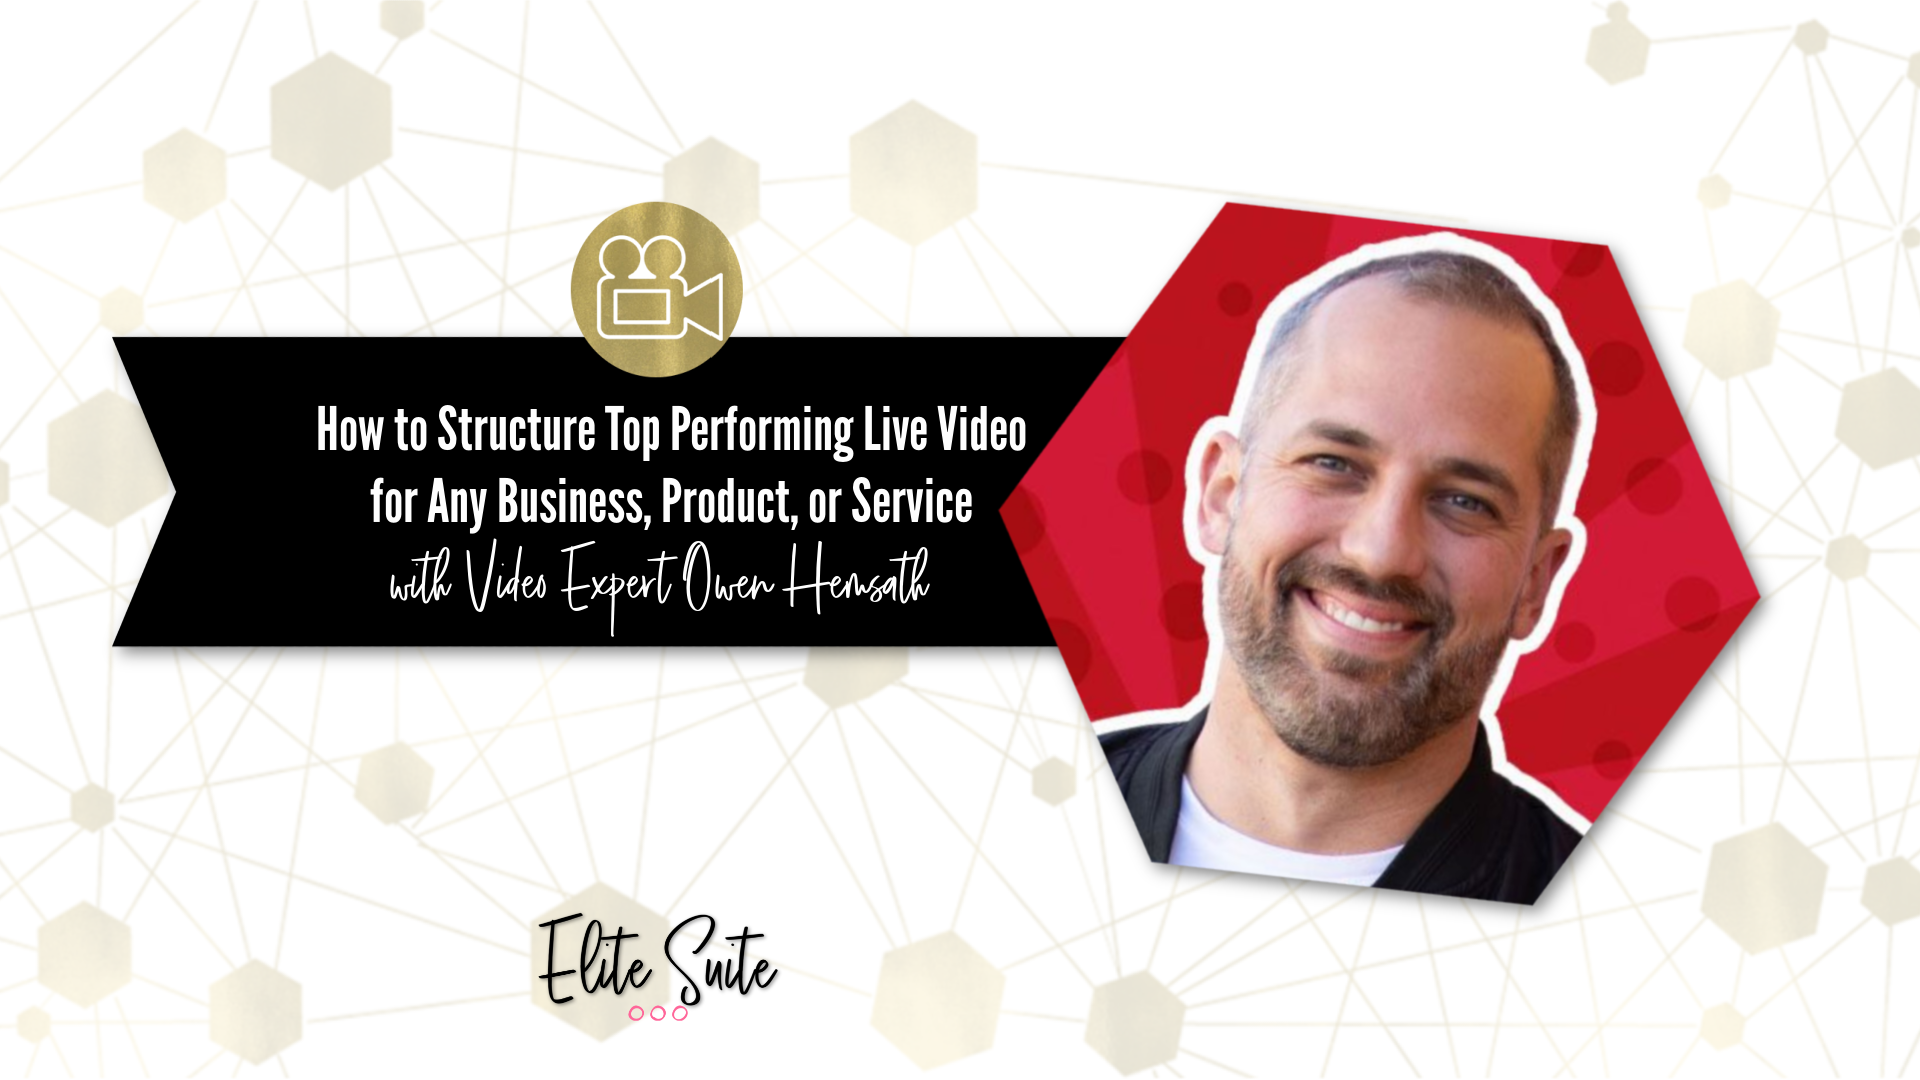 How to Structure a Top-Performing Live Video for Any Business, Product, or Service - Masterclass Title Overlay - Featured Image